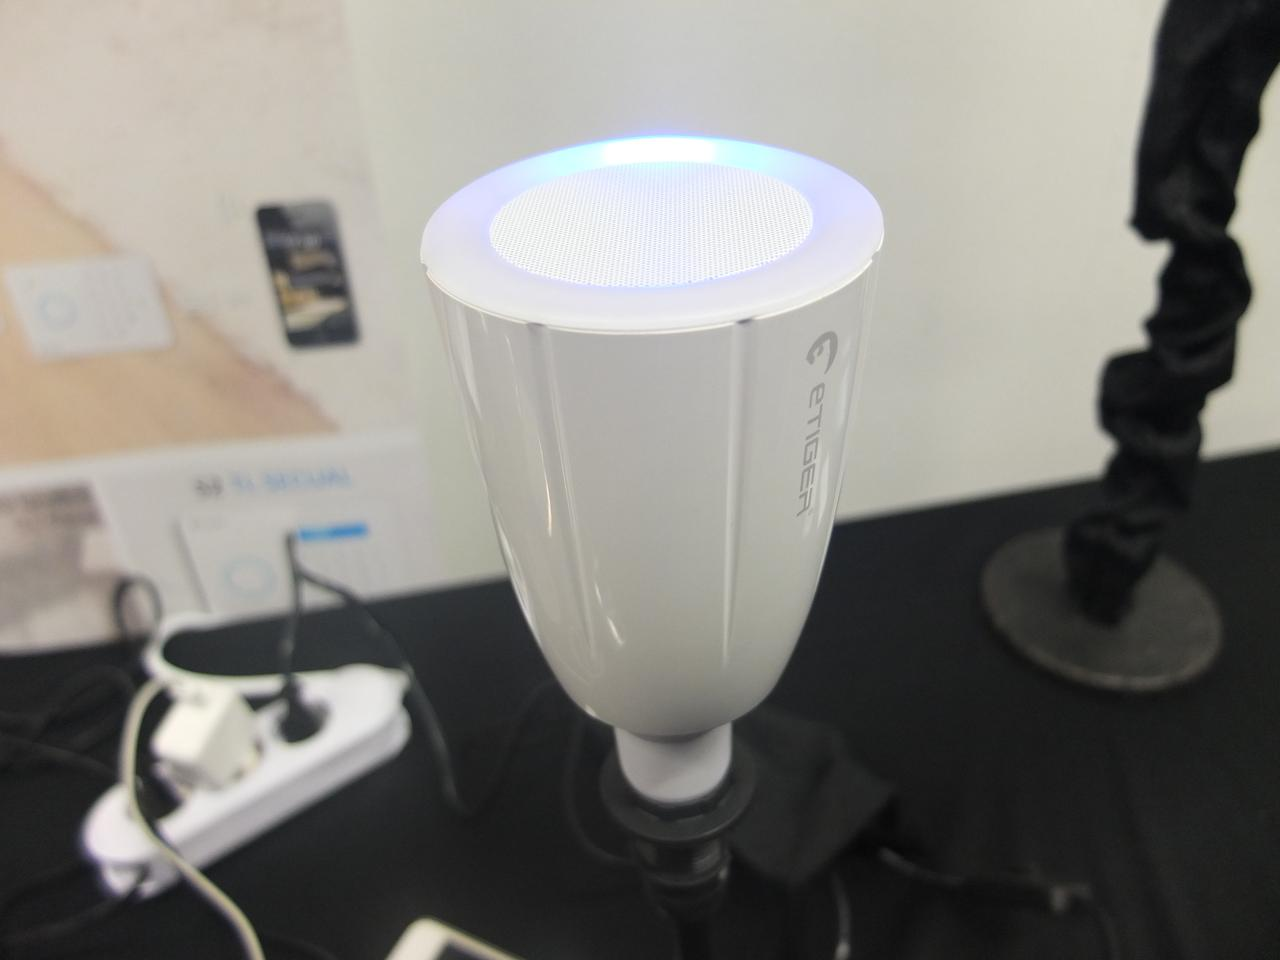 Cosmic Led is on display at IFA Berlin 2013 (Photo: Gizmag)